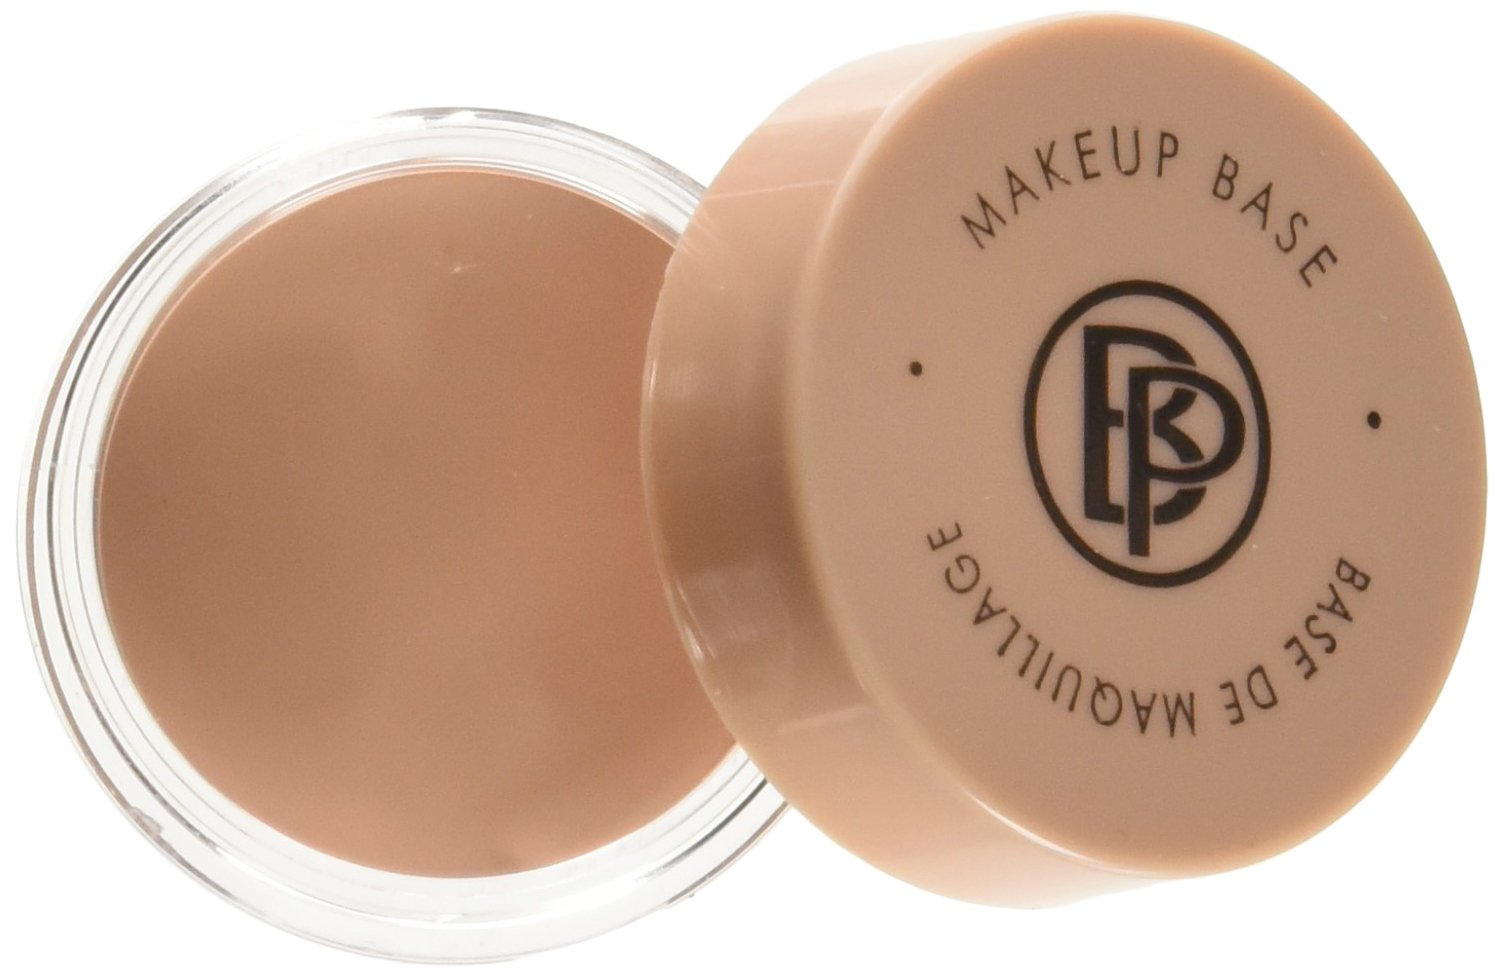 bellapierre Makeup Base | Waterproof, Long Lasting Formula | Flawless Complexion | Hypoallergenic & Safe for All Skin Types | Non-Toxic and Paraben Free | Oil and Cruelty Free - 0.3-Ounce